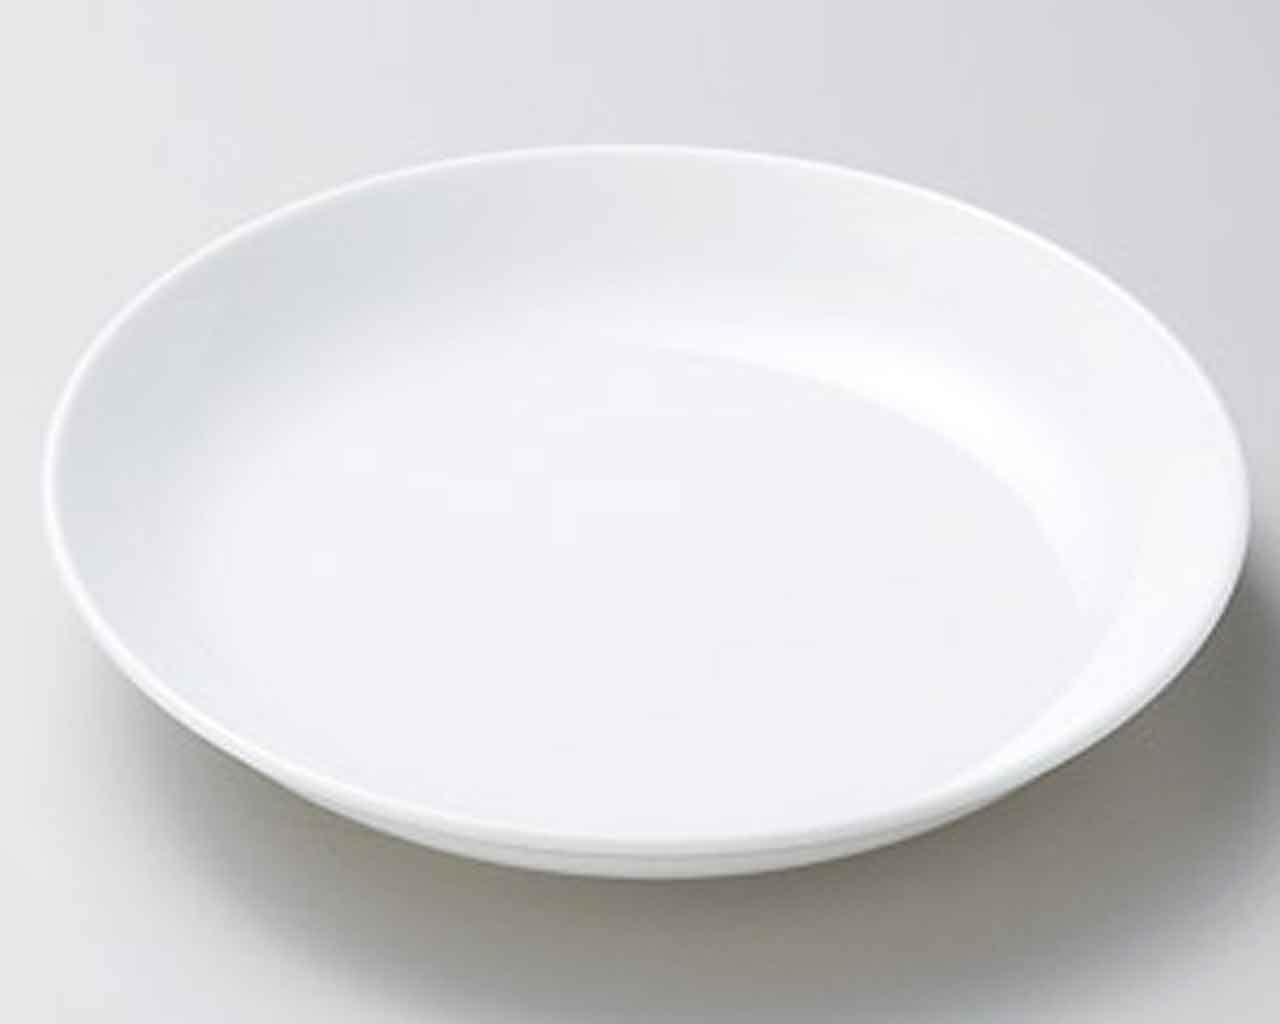 Karun 8.6inch Set of 2 Medium Plates White porcelain Made in Japan